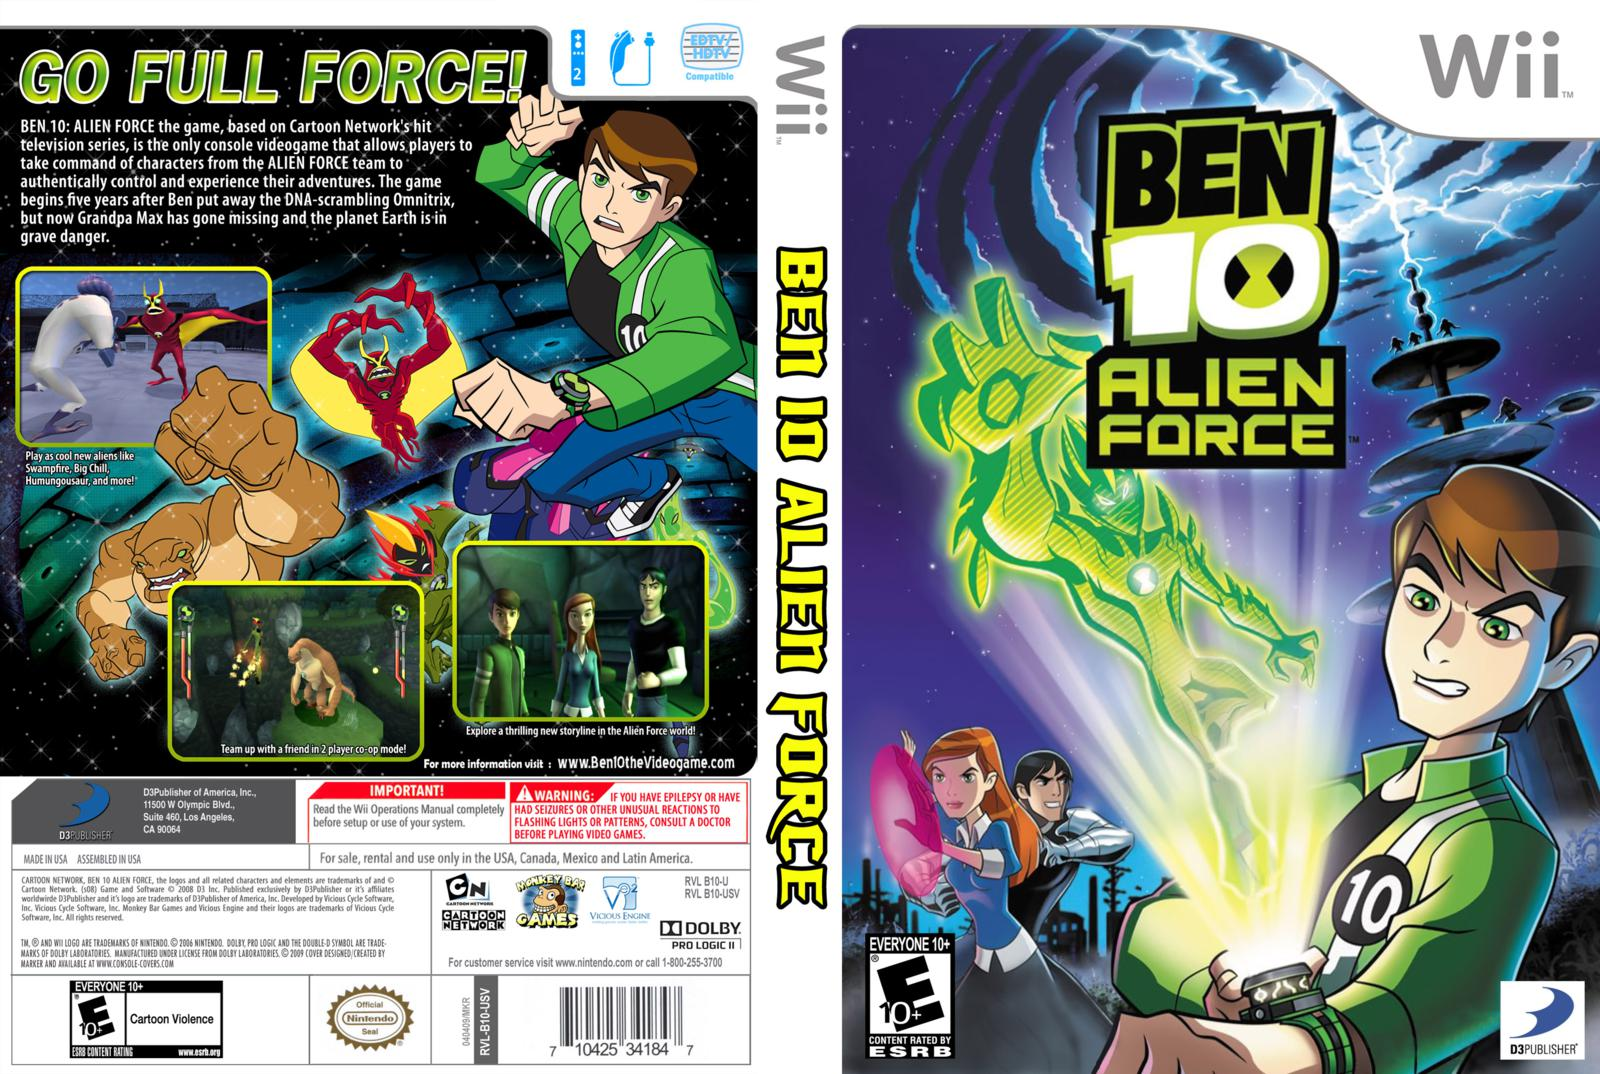 Ben 10: Alien Force Cheats & Codes for Wii - CheatCodes.com